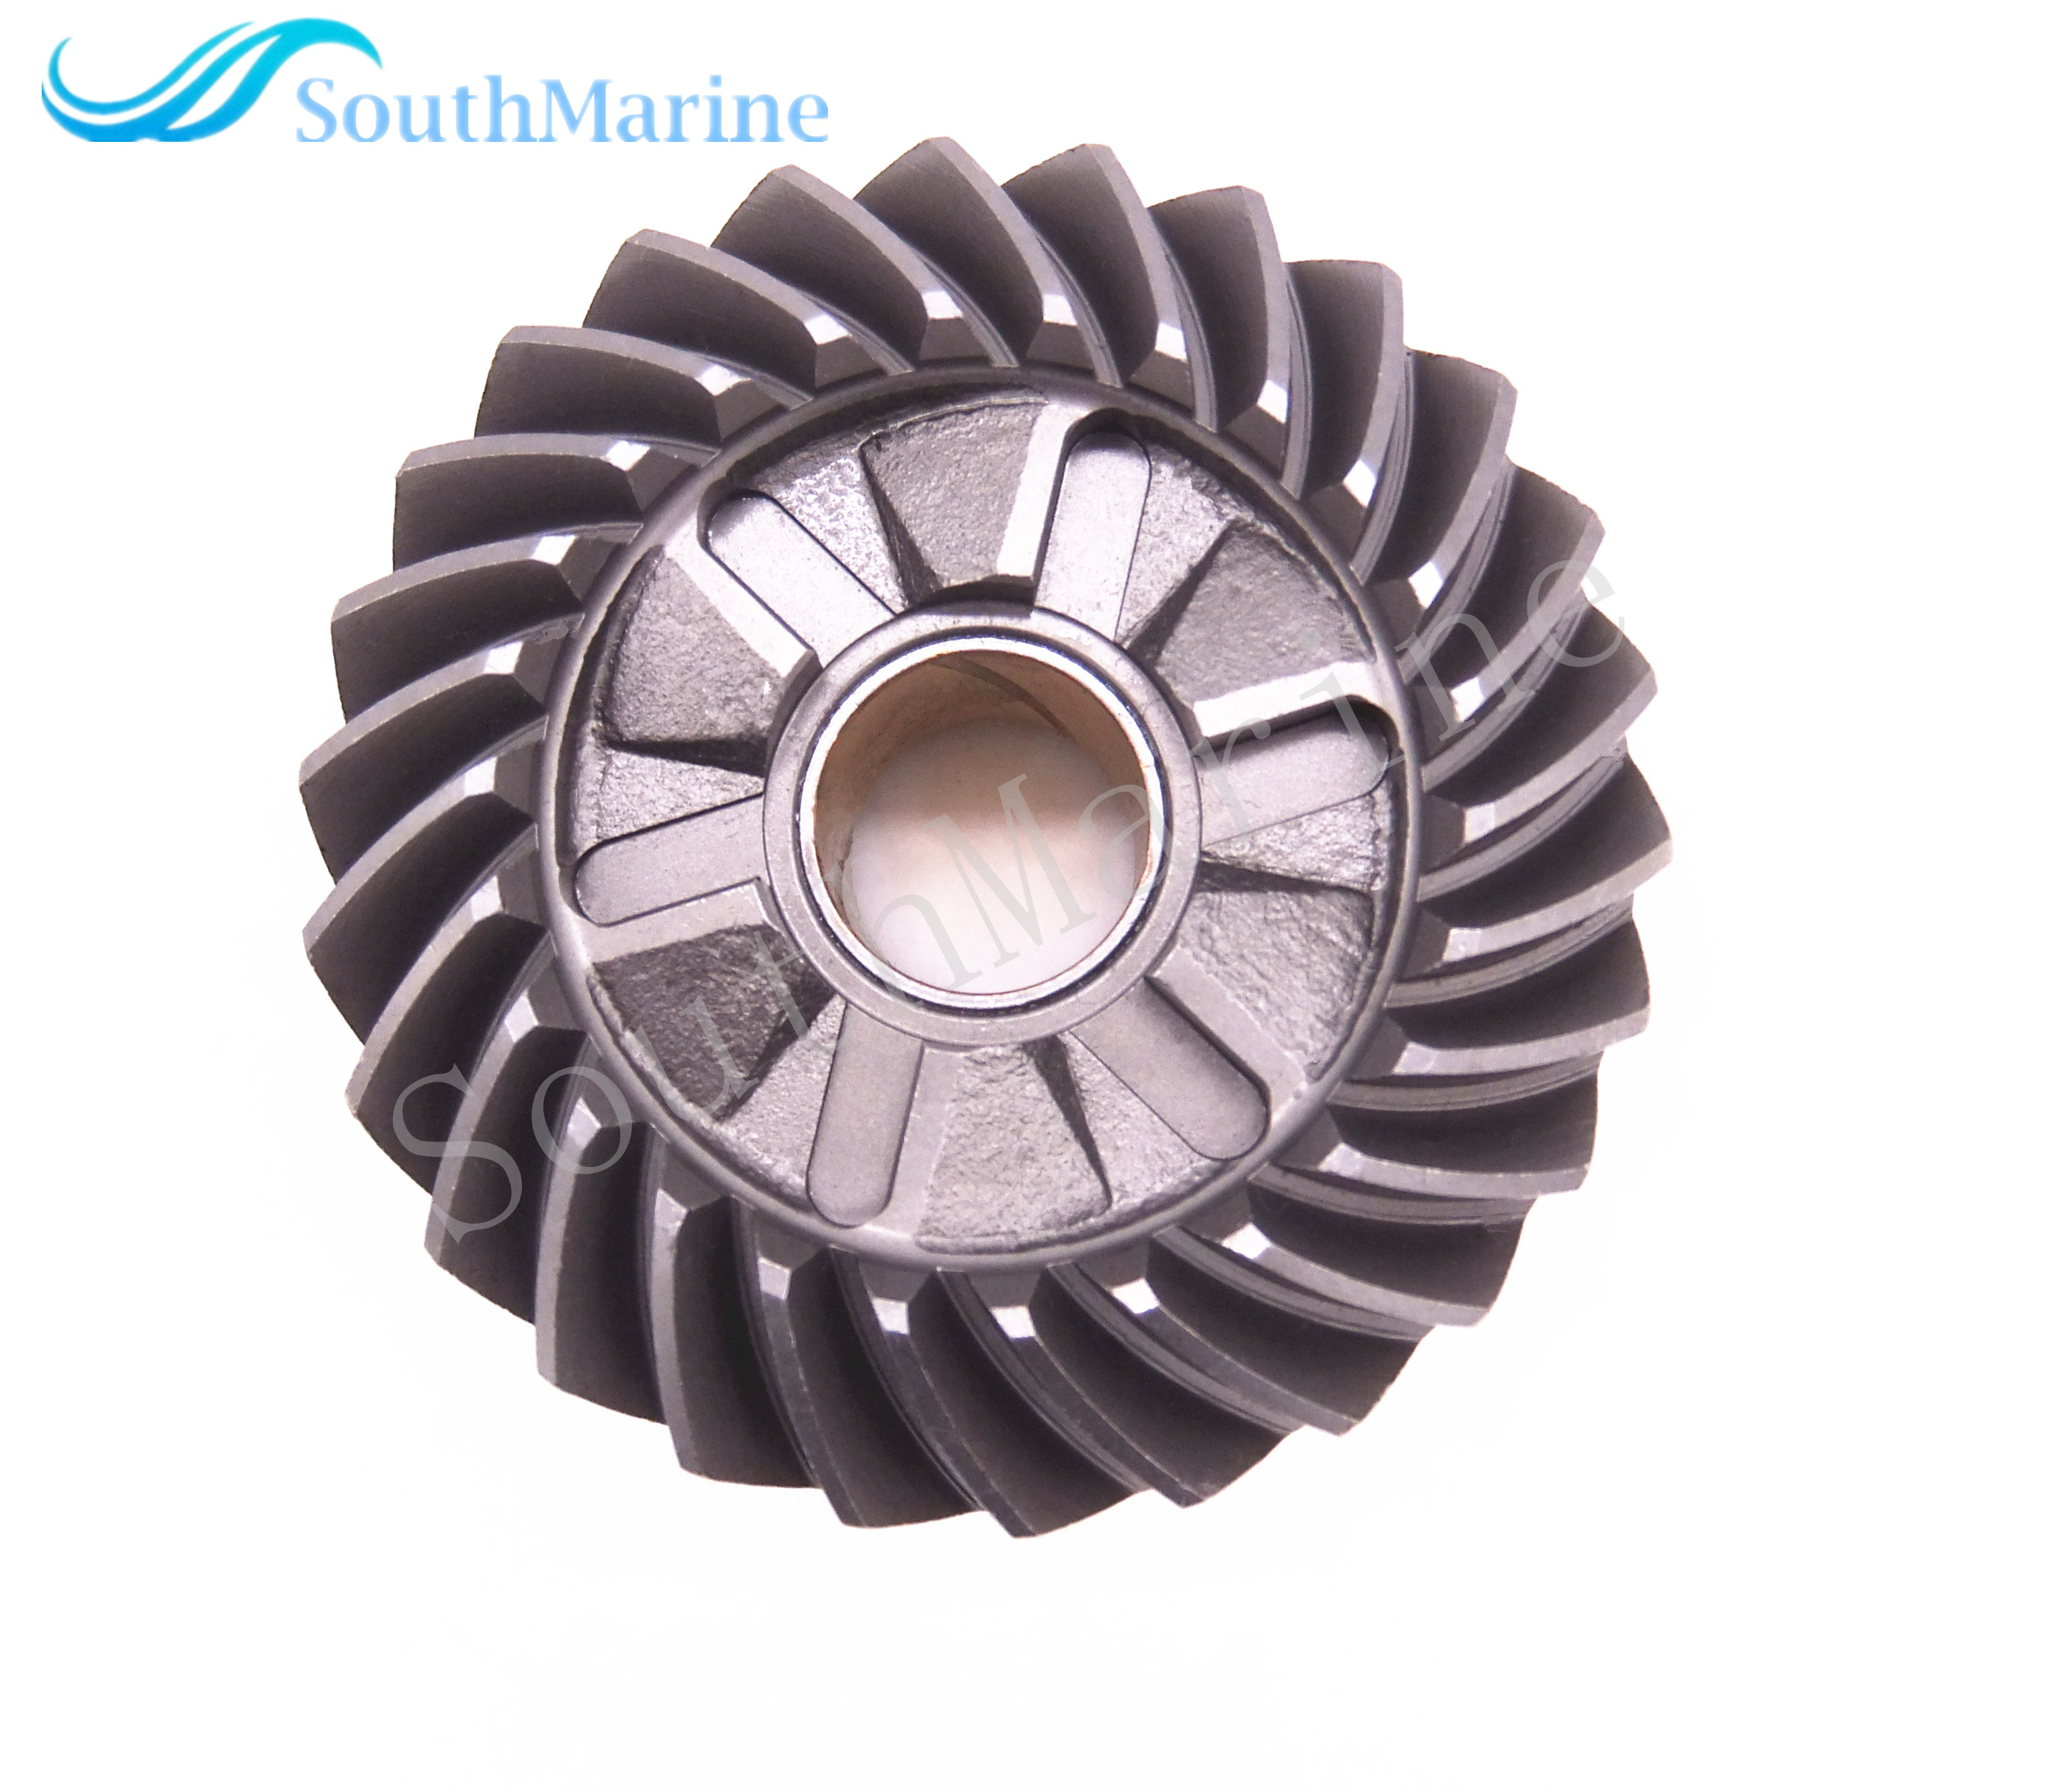 Obedient T85-04000100 Forward Gear For Parsun Hdx Outboard Engine 2-stroke T75 T85 T90 Boat Motor Boat Parts & Accessories